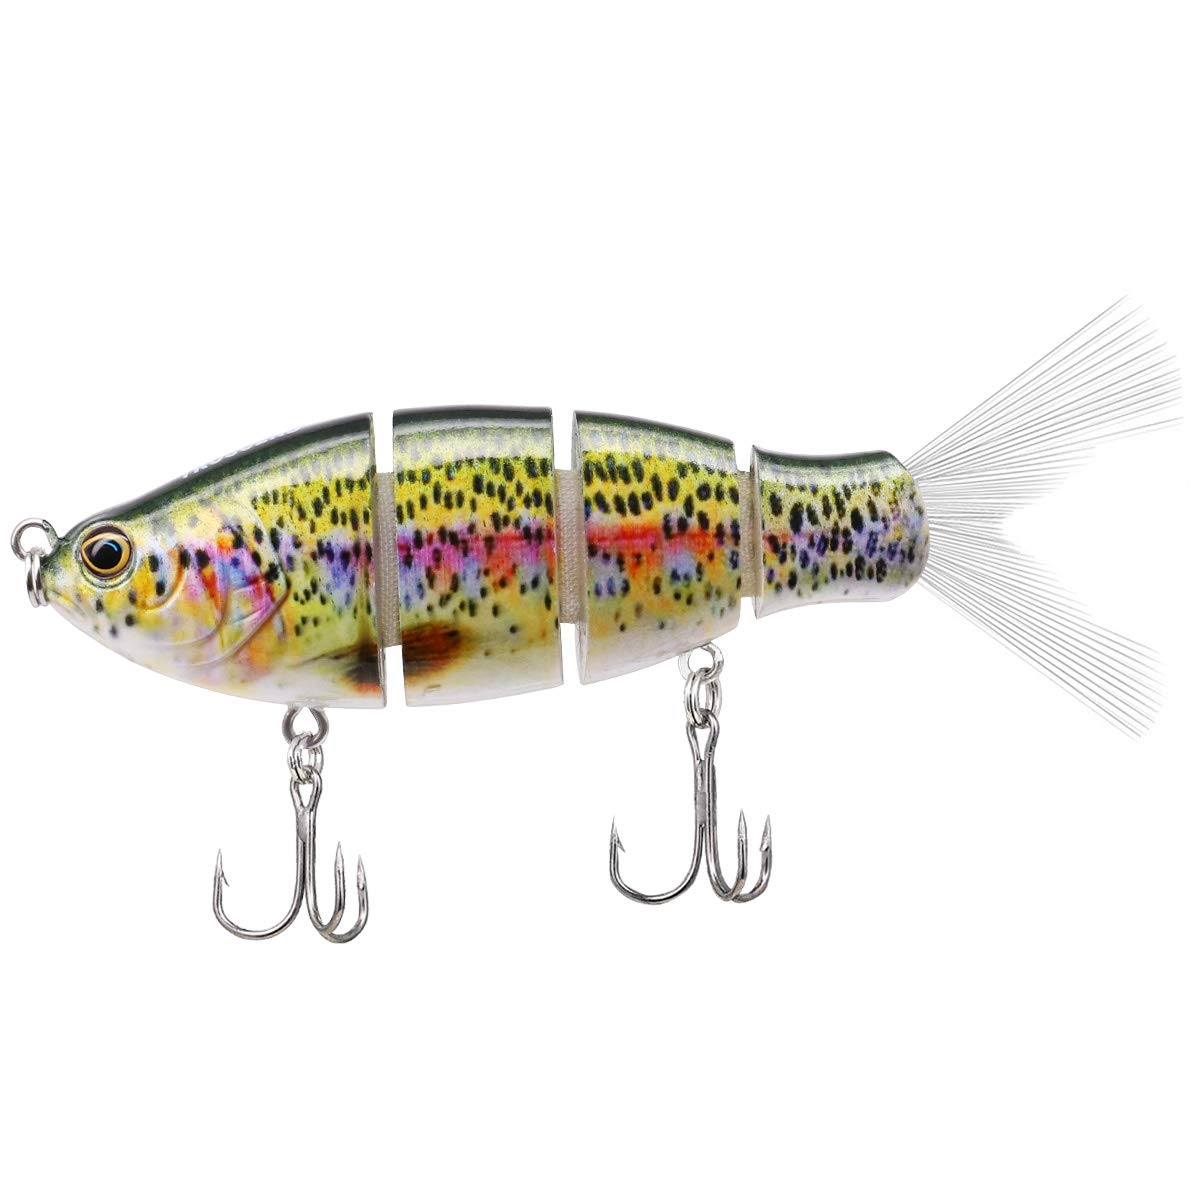 TRUSCEND Fishing Lures Swimbait Bass, 10cm 3.93'' Fishing Lures Crankbait Jointed Trout Swimbait Mustad Hooks (Spotted) by TRUSCEND